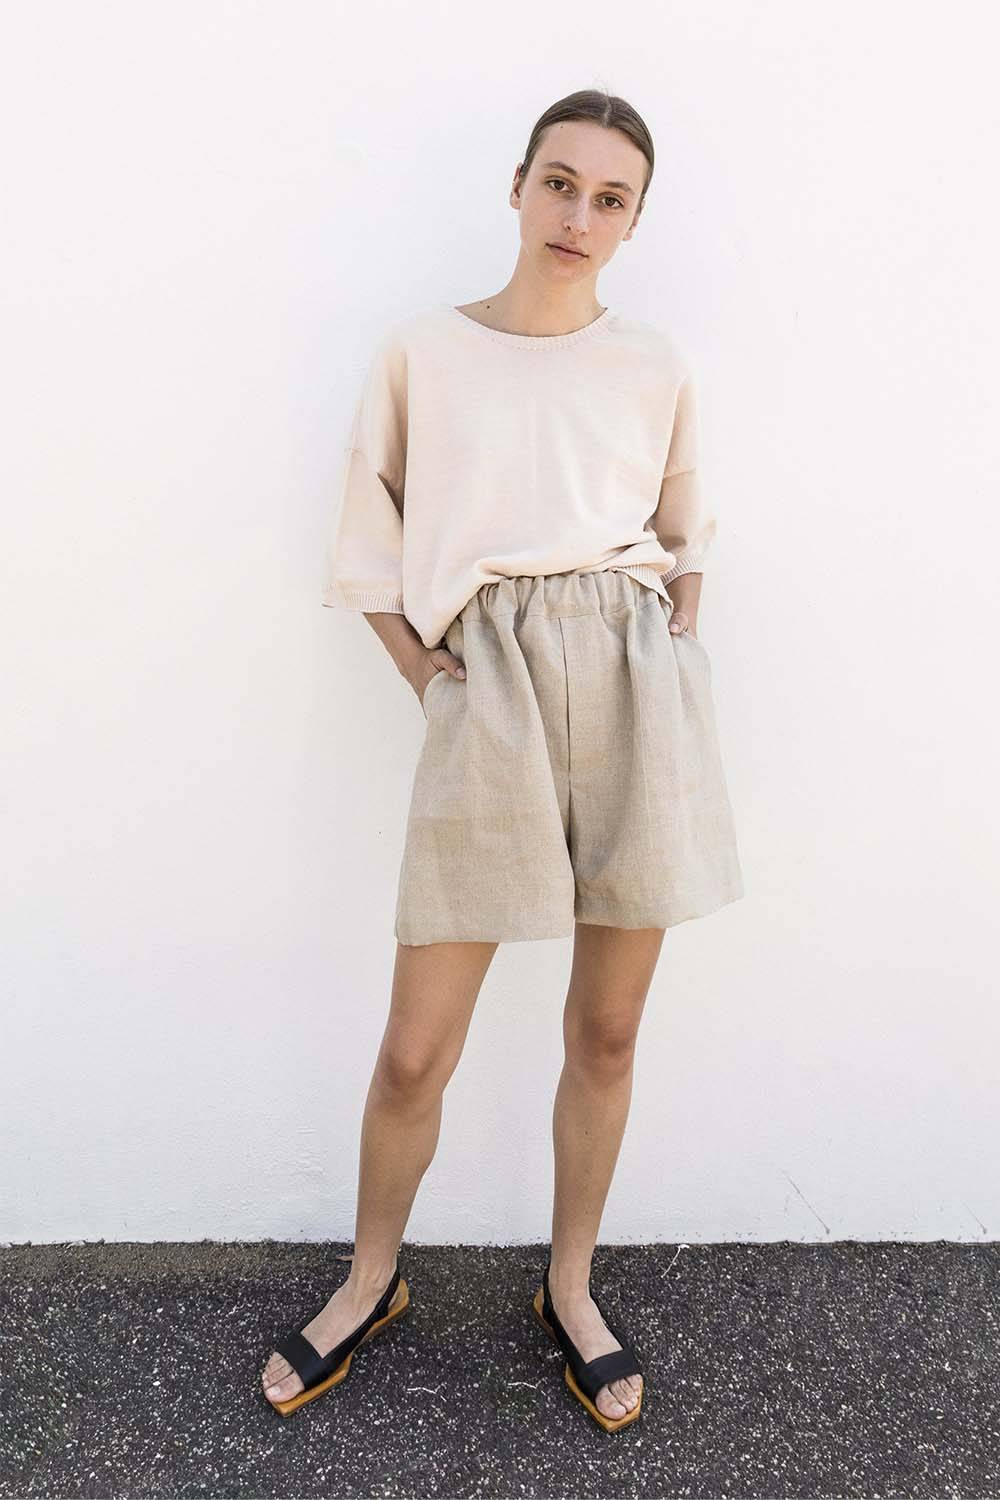 abch affordable linen clothing australia